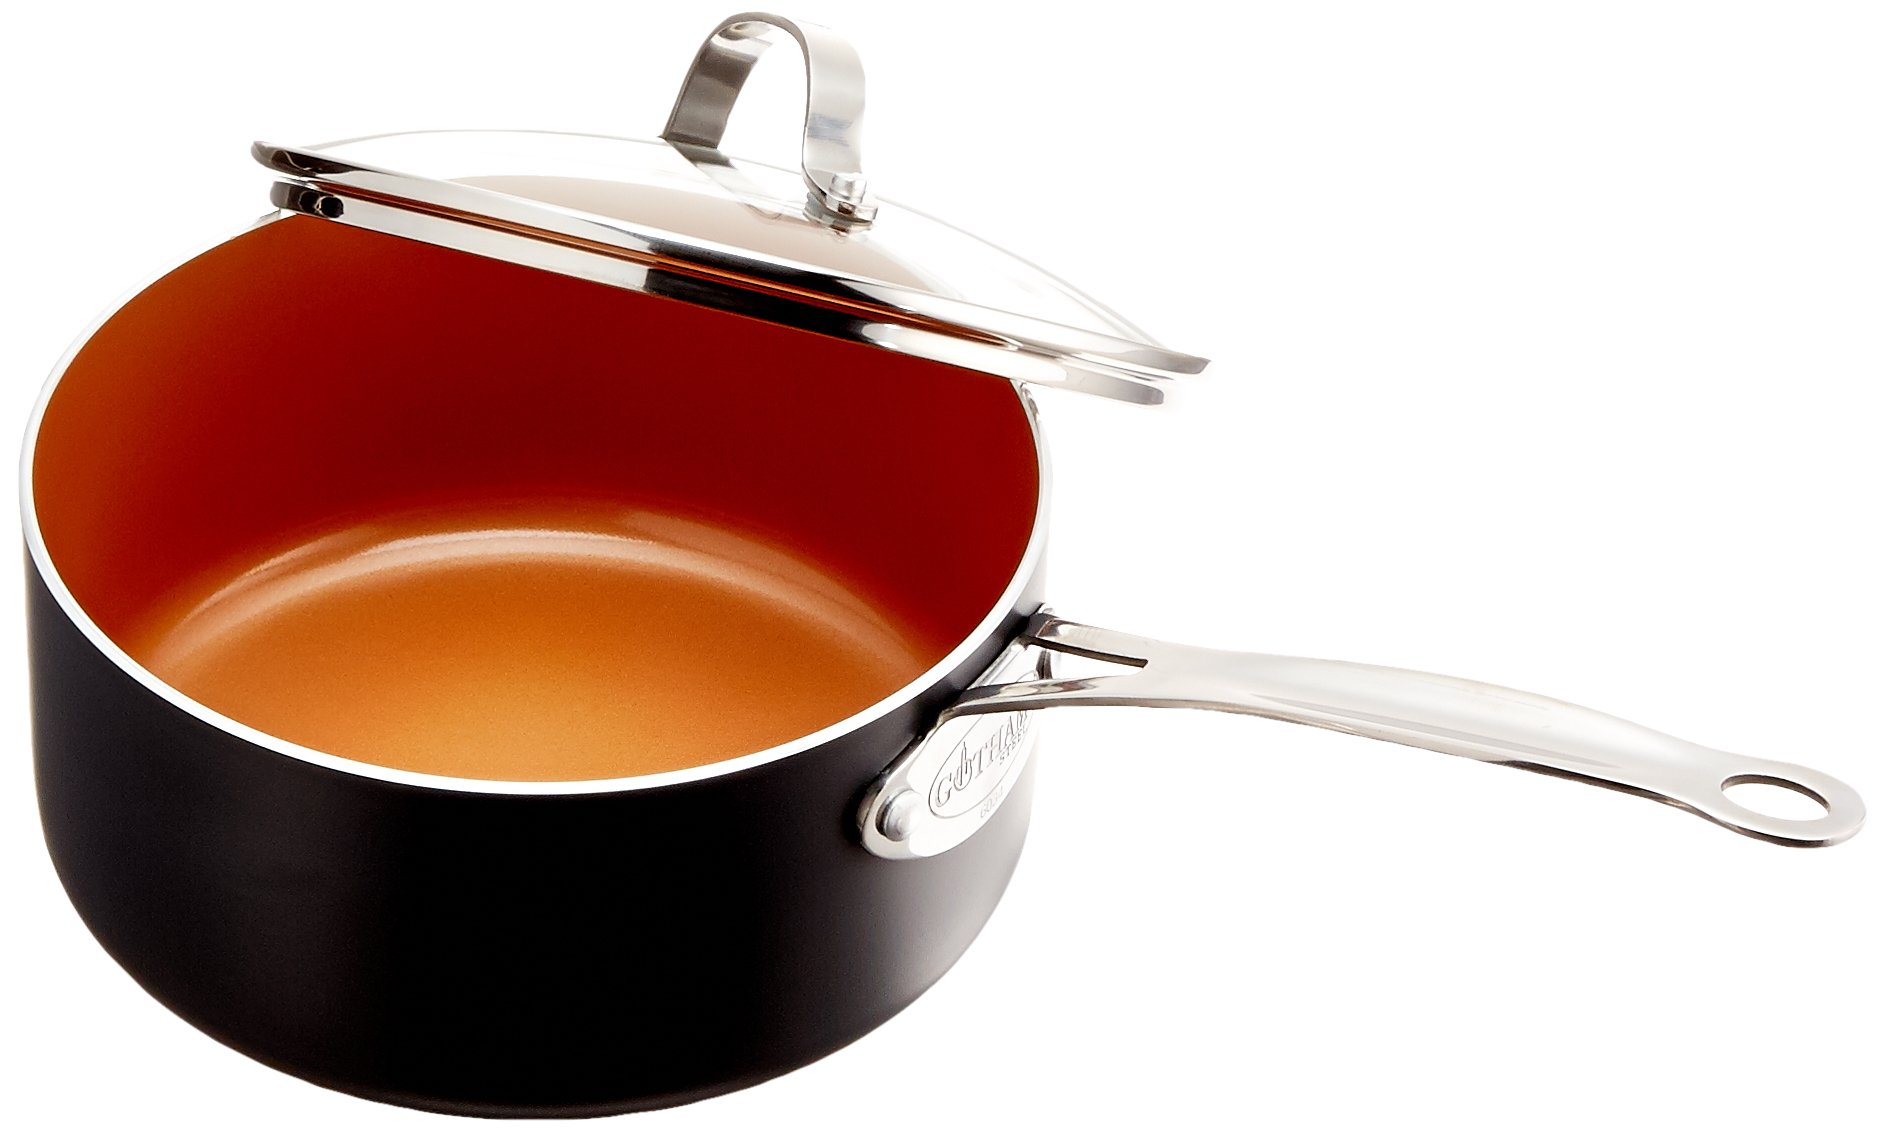 Gotham Steel Nonstick 3-Quart Stock Pot with Ceramic and Titanium Copper Surface and Tempered Glass Lid - Dishwasher Safe by GOTHAM STEEL